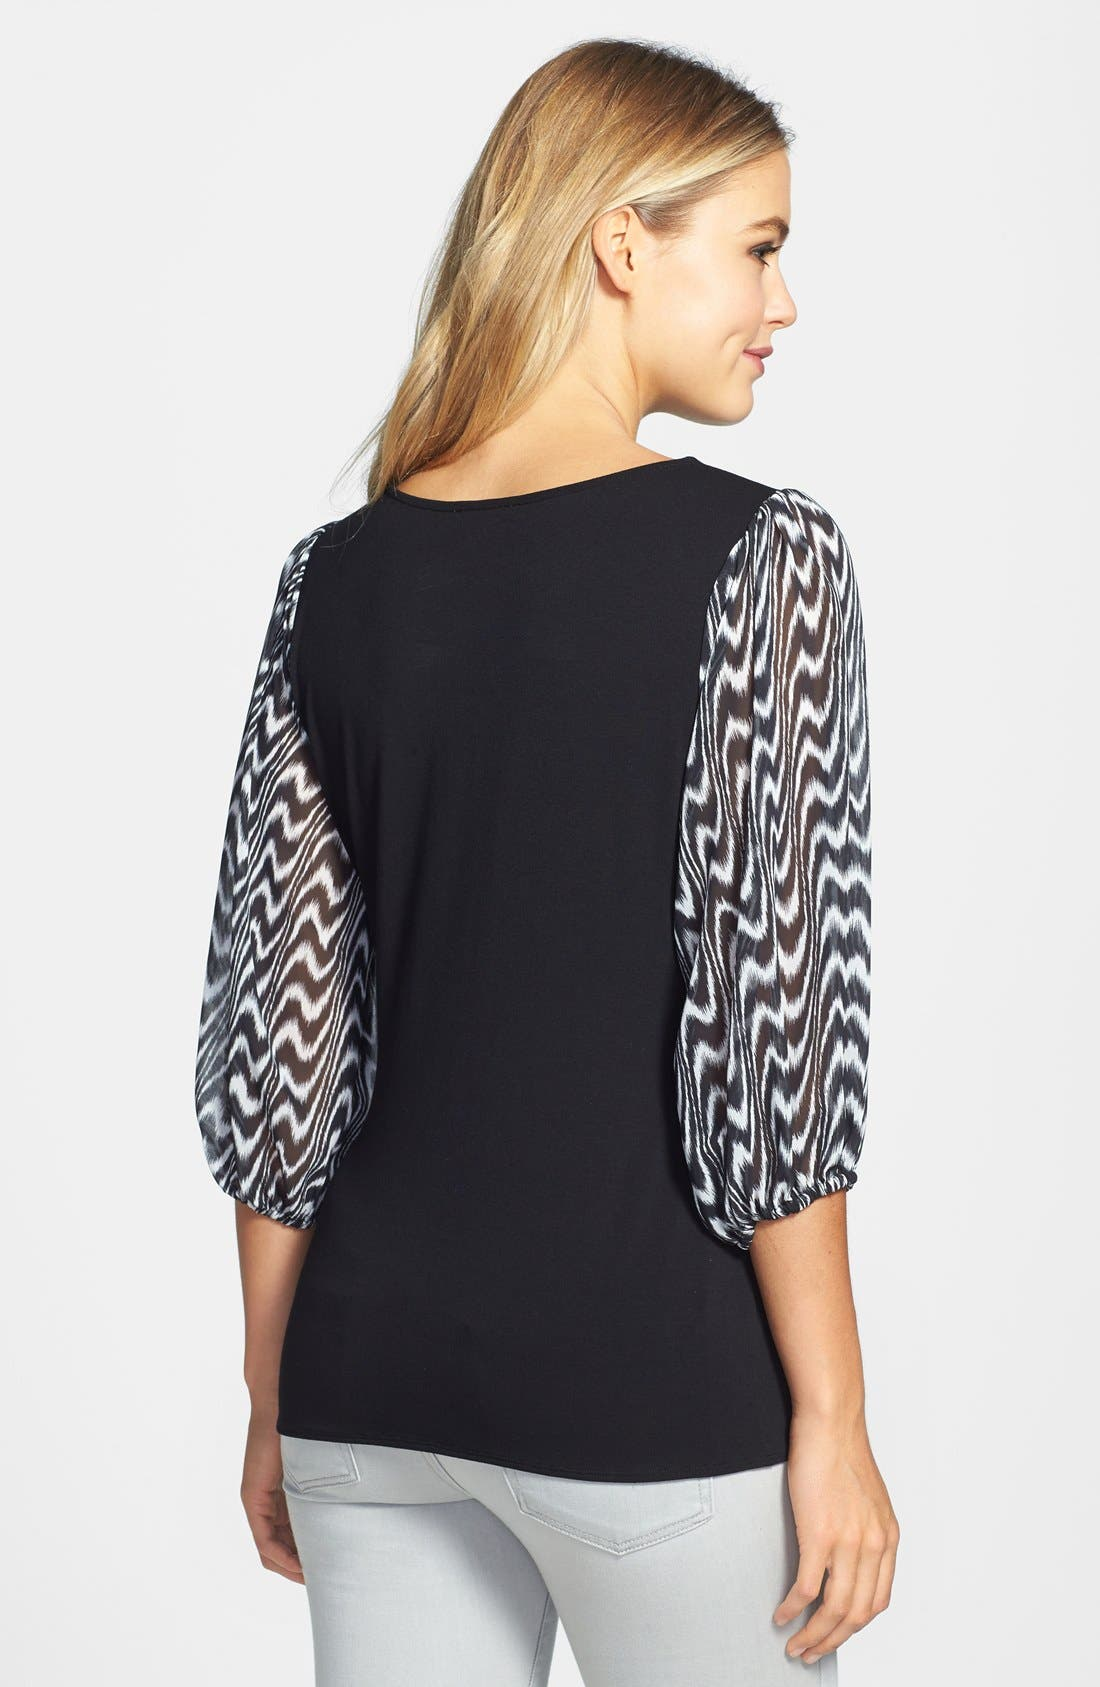 Alternate Image 2  - Vince Camuto Print Chiffon Sleeve Stretch Knit Top